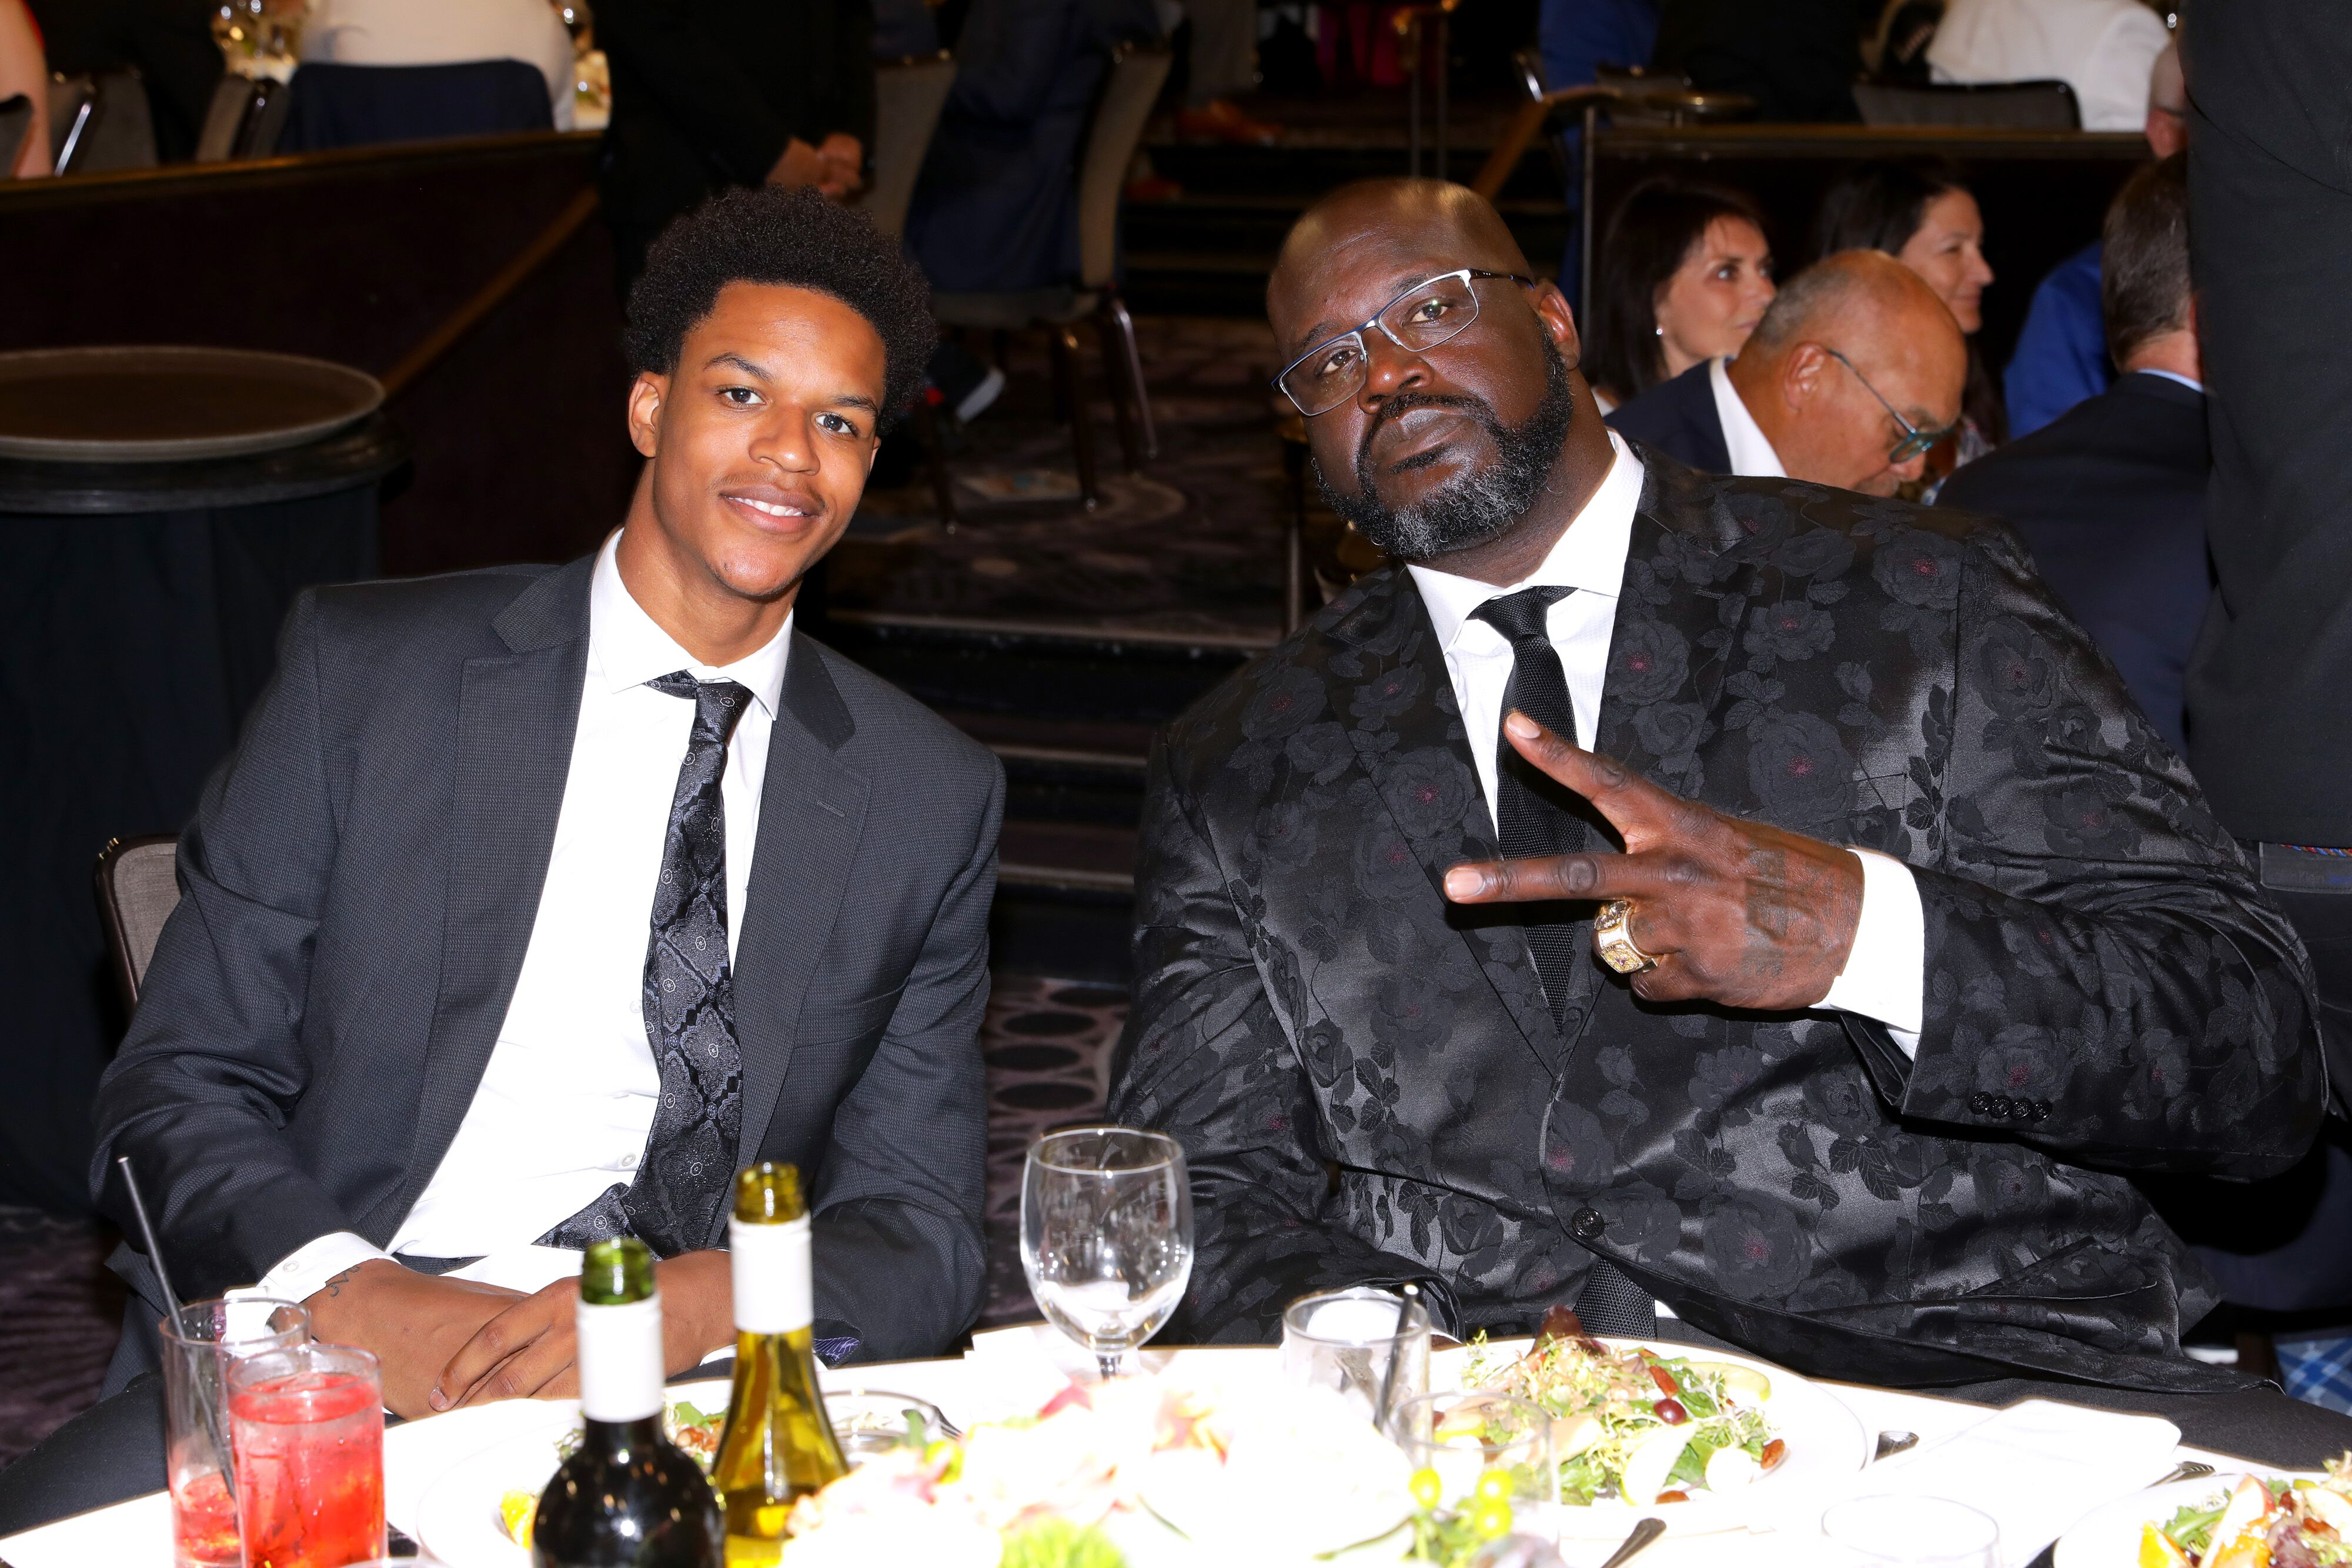 Shaquille O'Neal and son Shareef O'Neal at the 19th annual Harold and Carole Pump Foundation Gala| Source: Getty Images